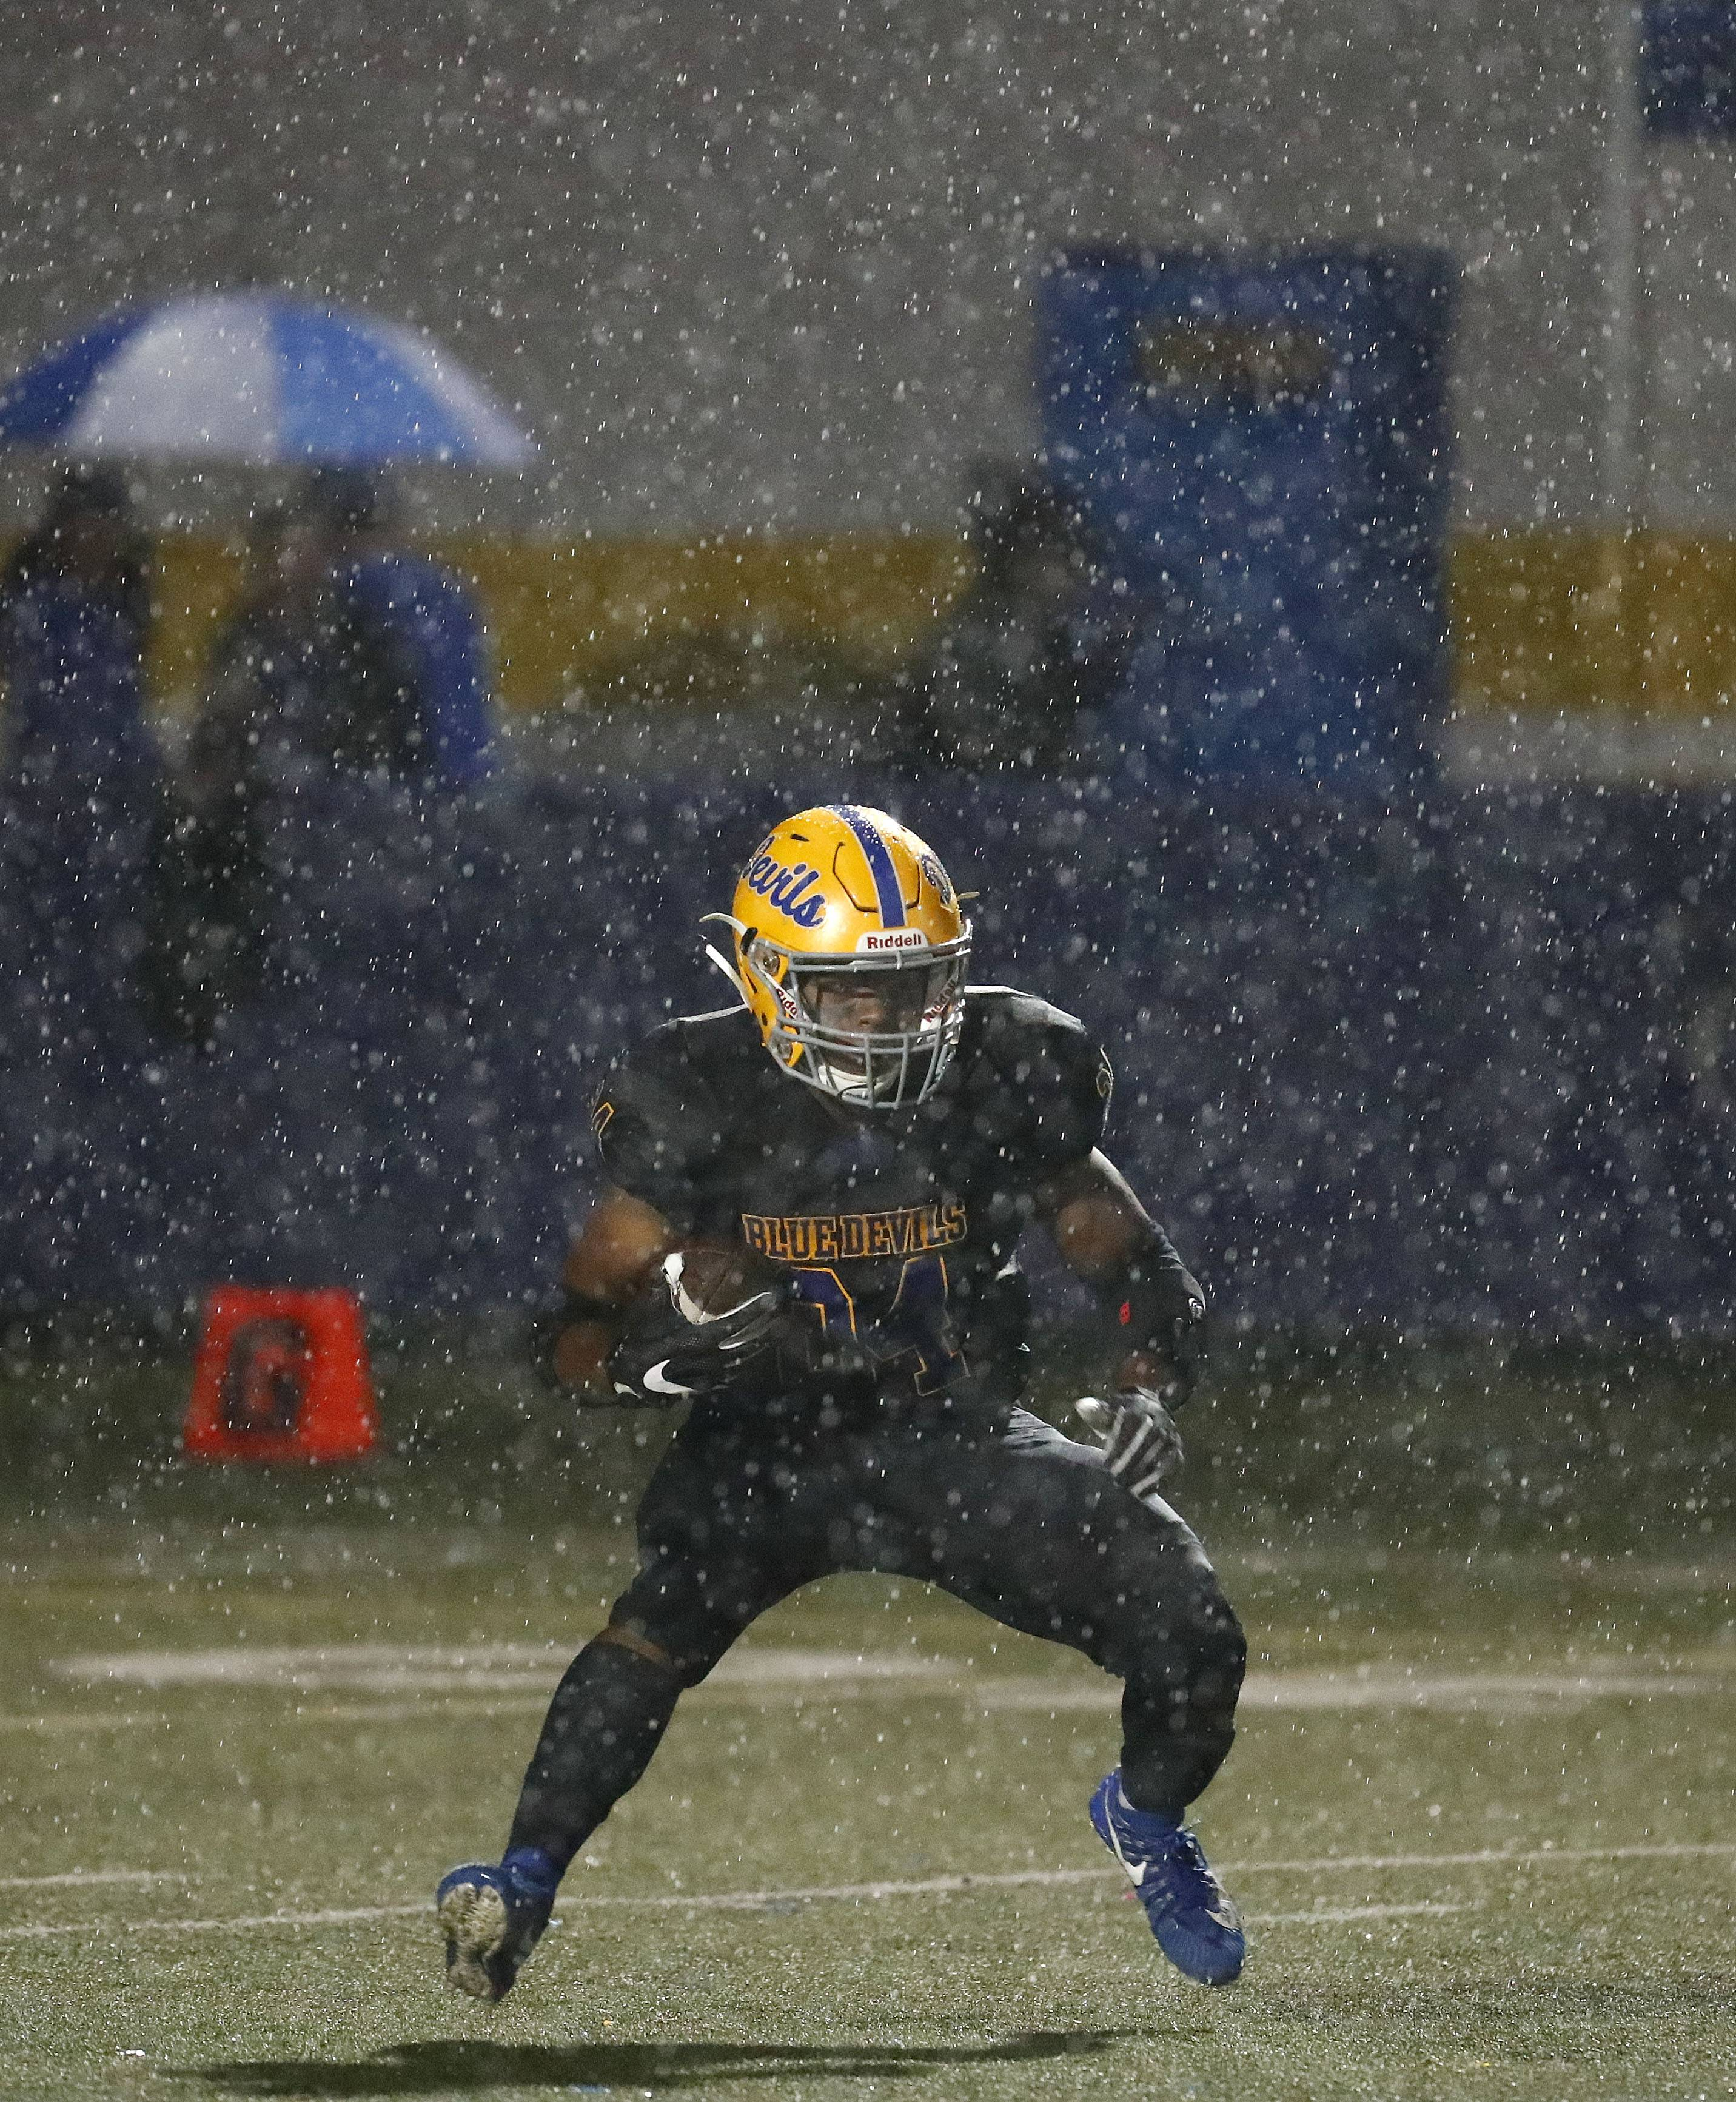 Warren takes lead on Lake Zurich before bad weather hits